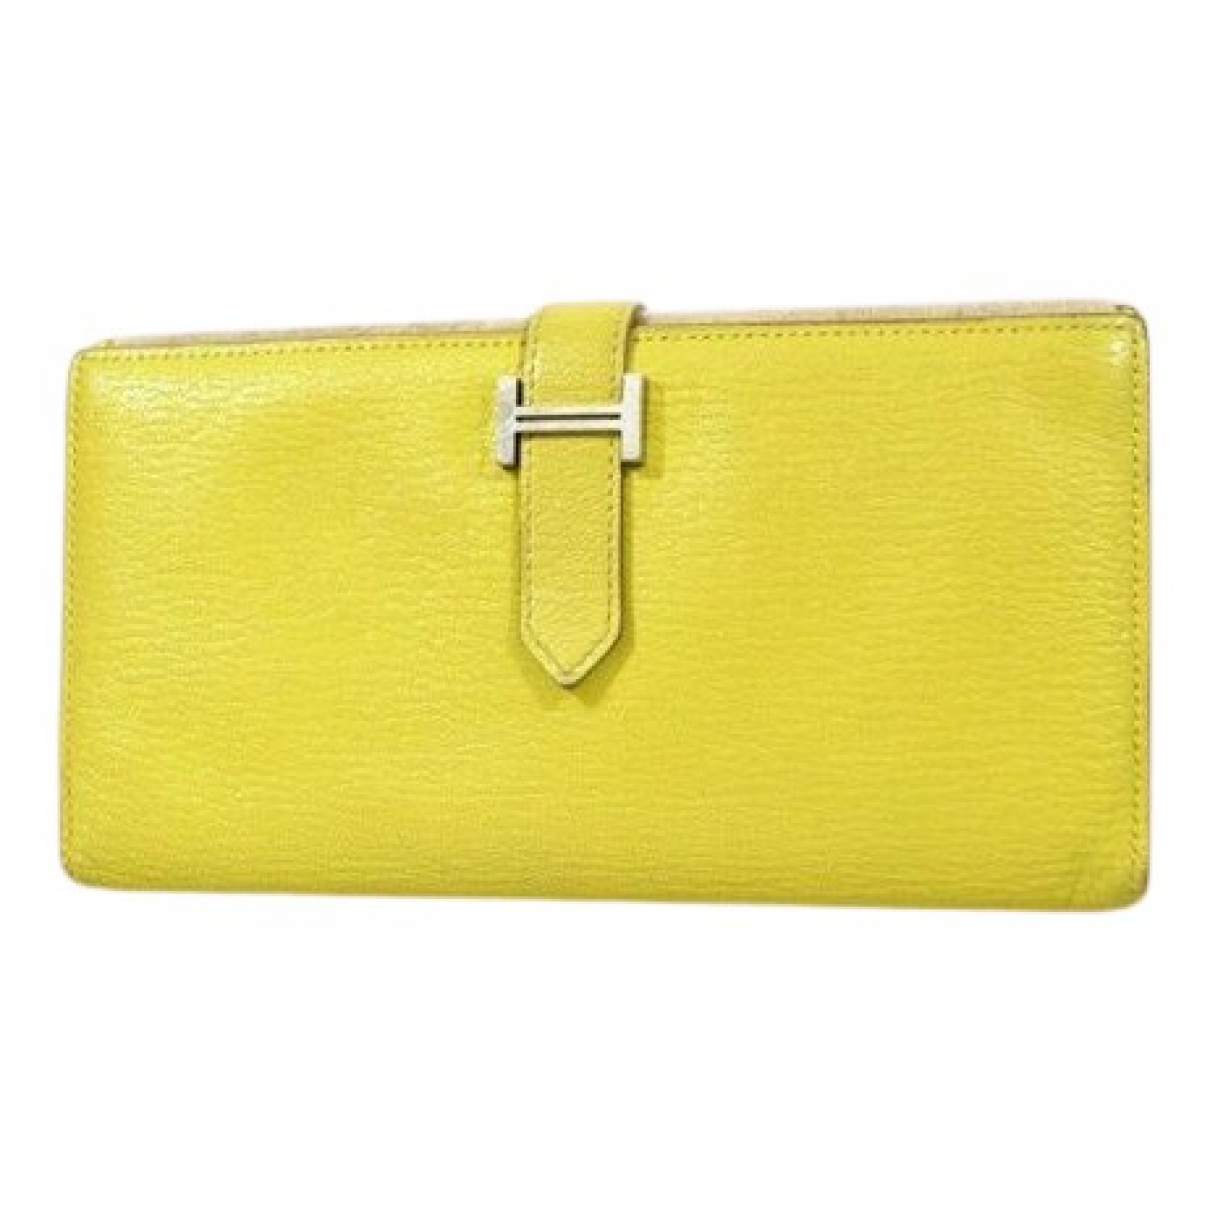 Hermès Béarn Yellow Leather wallet for Women N